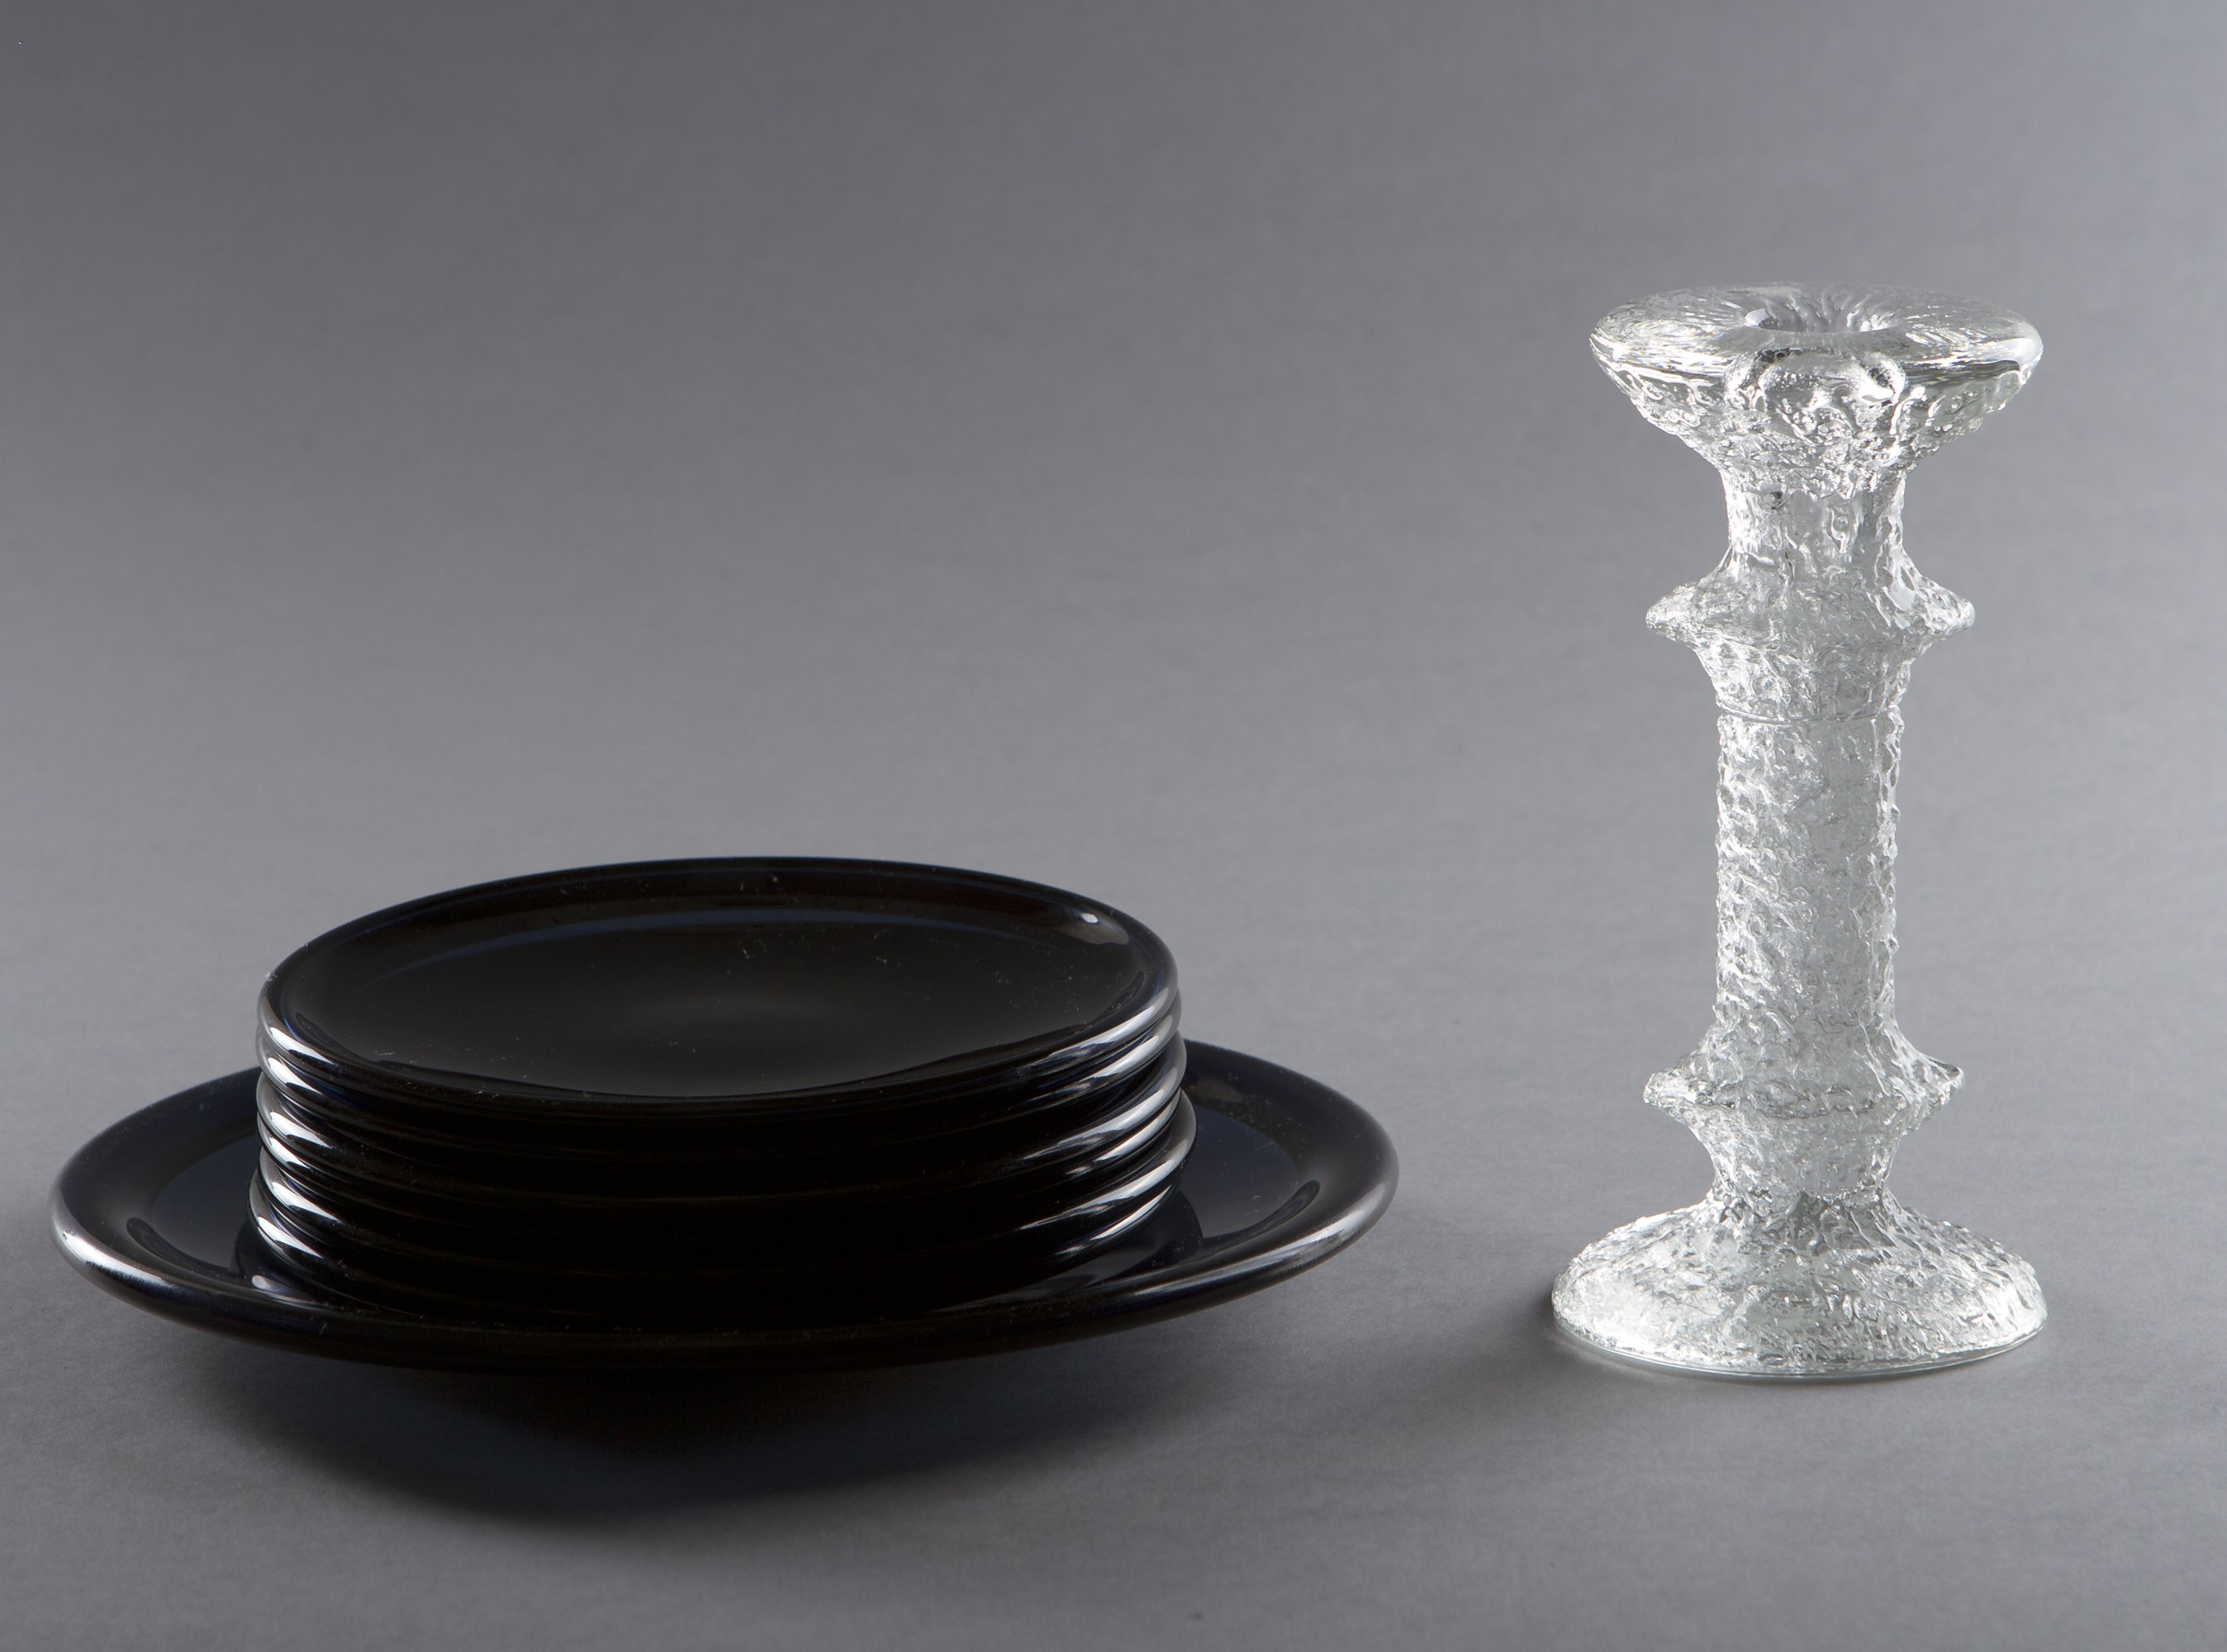 Plates and candlestick